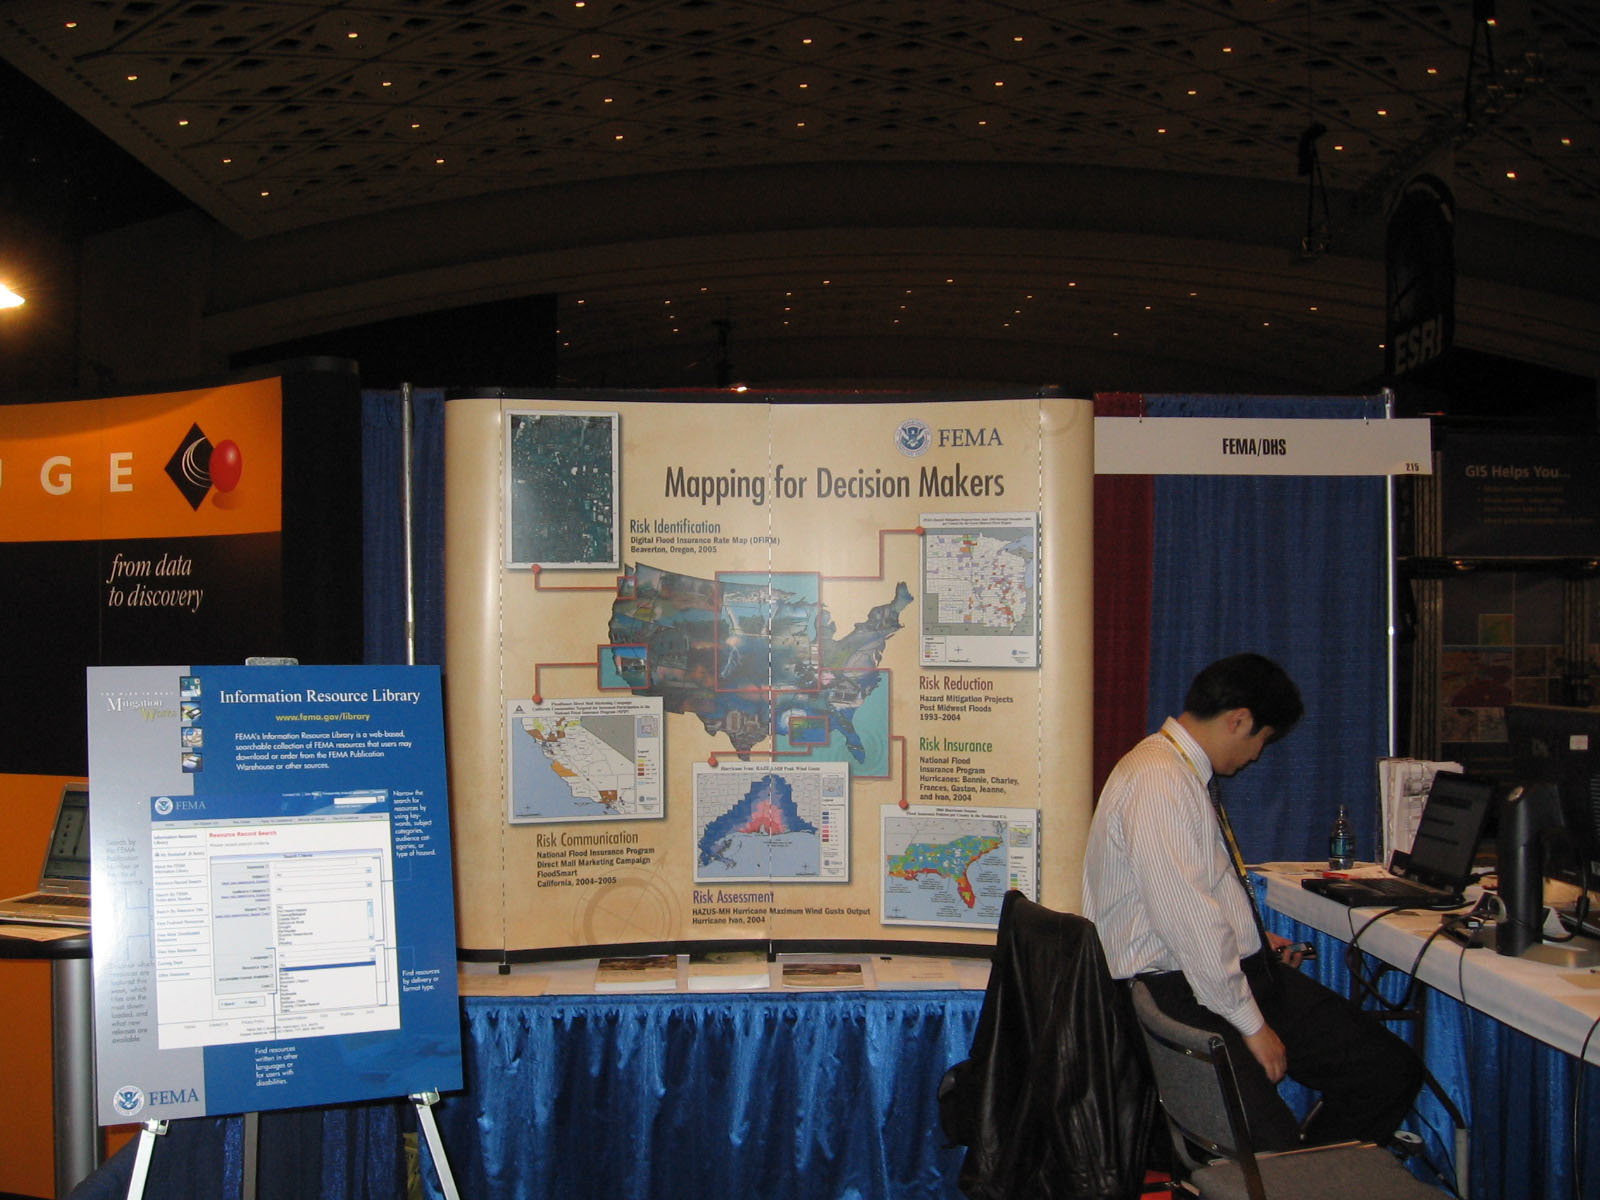 Paul Huang of FEMA's Map Service Center (MSC) researches information for visitors to FEMA's booth during the ESRI Federal User Conference in January 2007. Photo by Eugene Luke/FEMA.